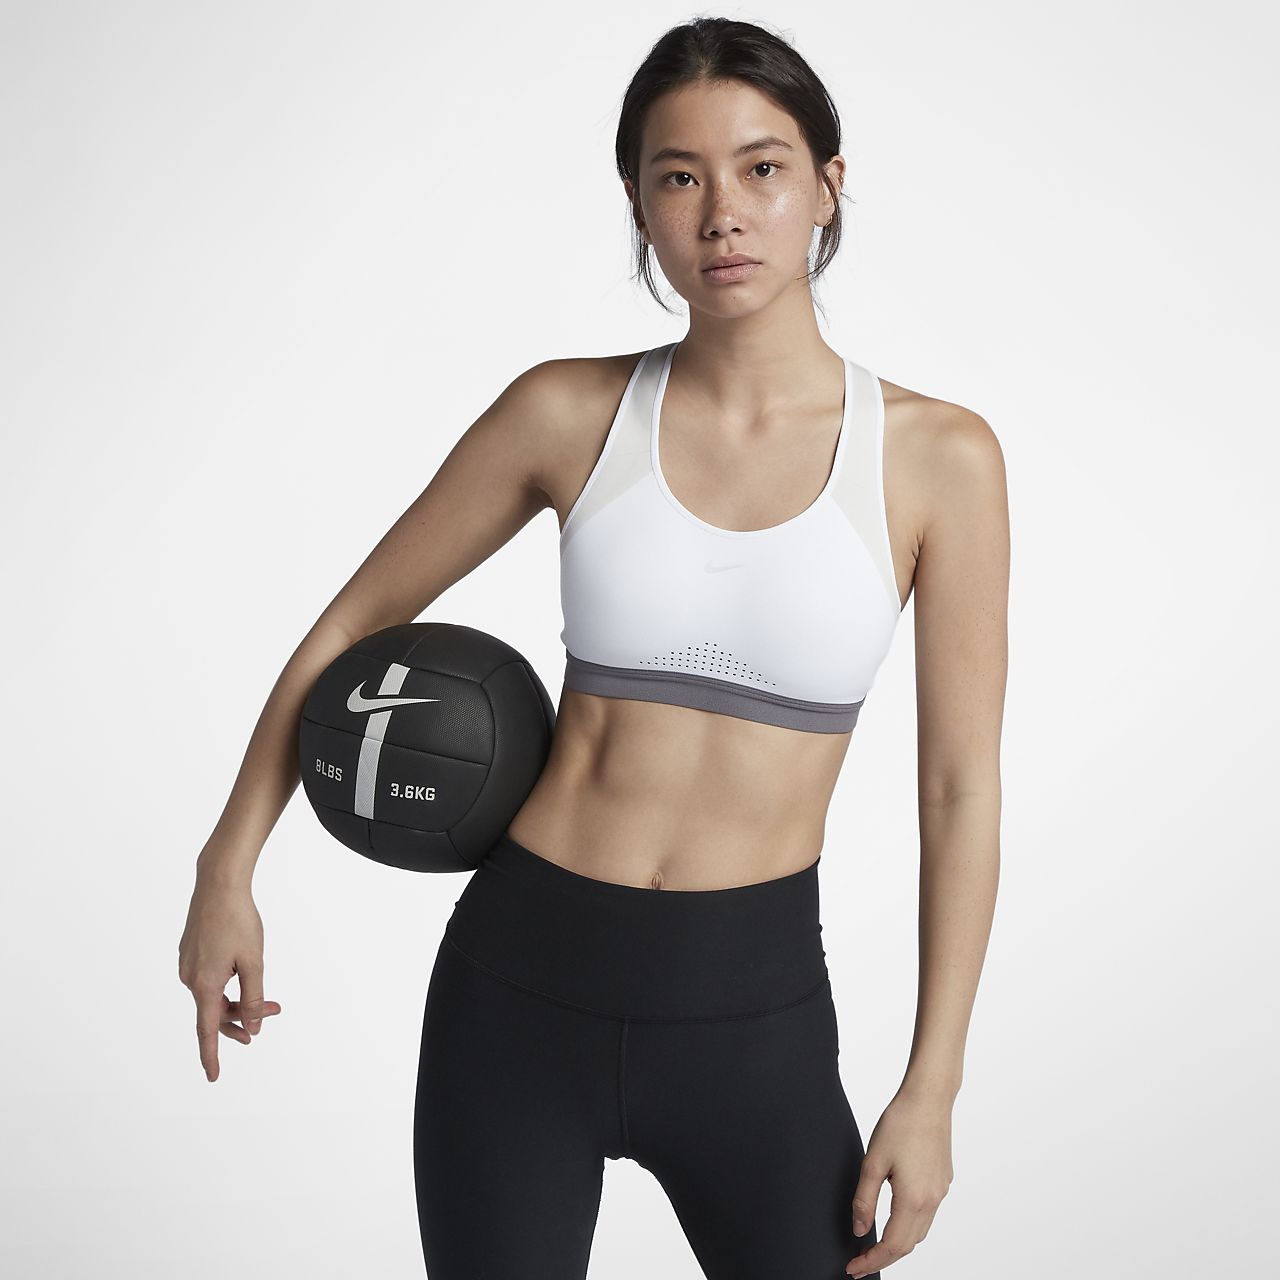 a0dc533e06 Nike Motion Adapt Women s Sports Bra. Nike.com